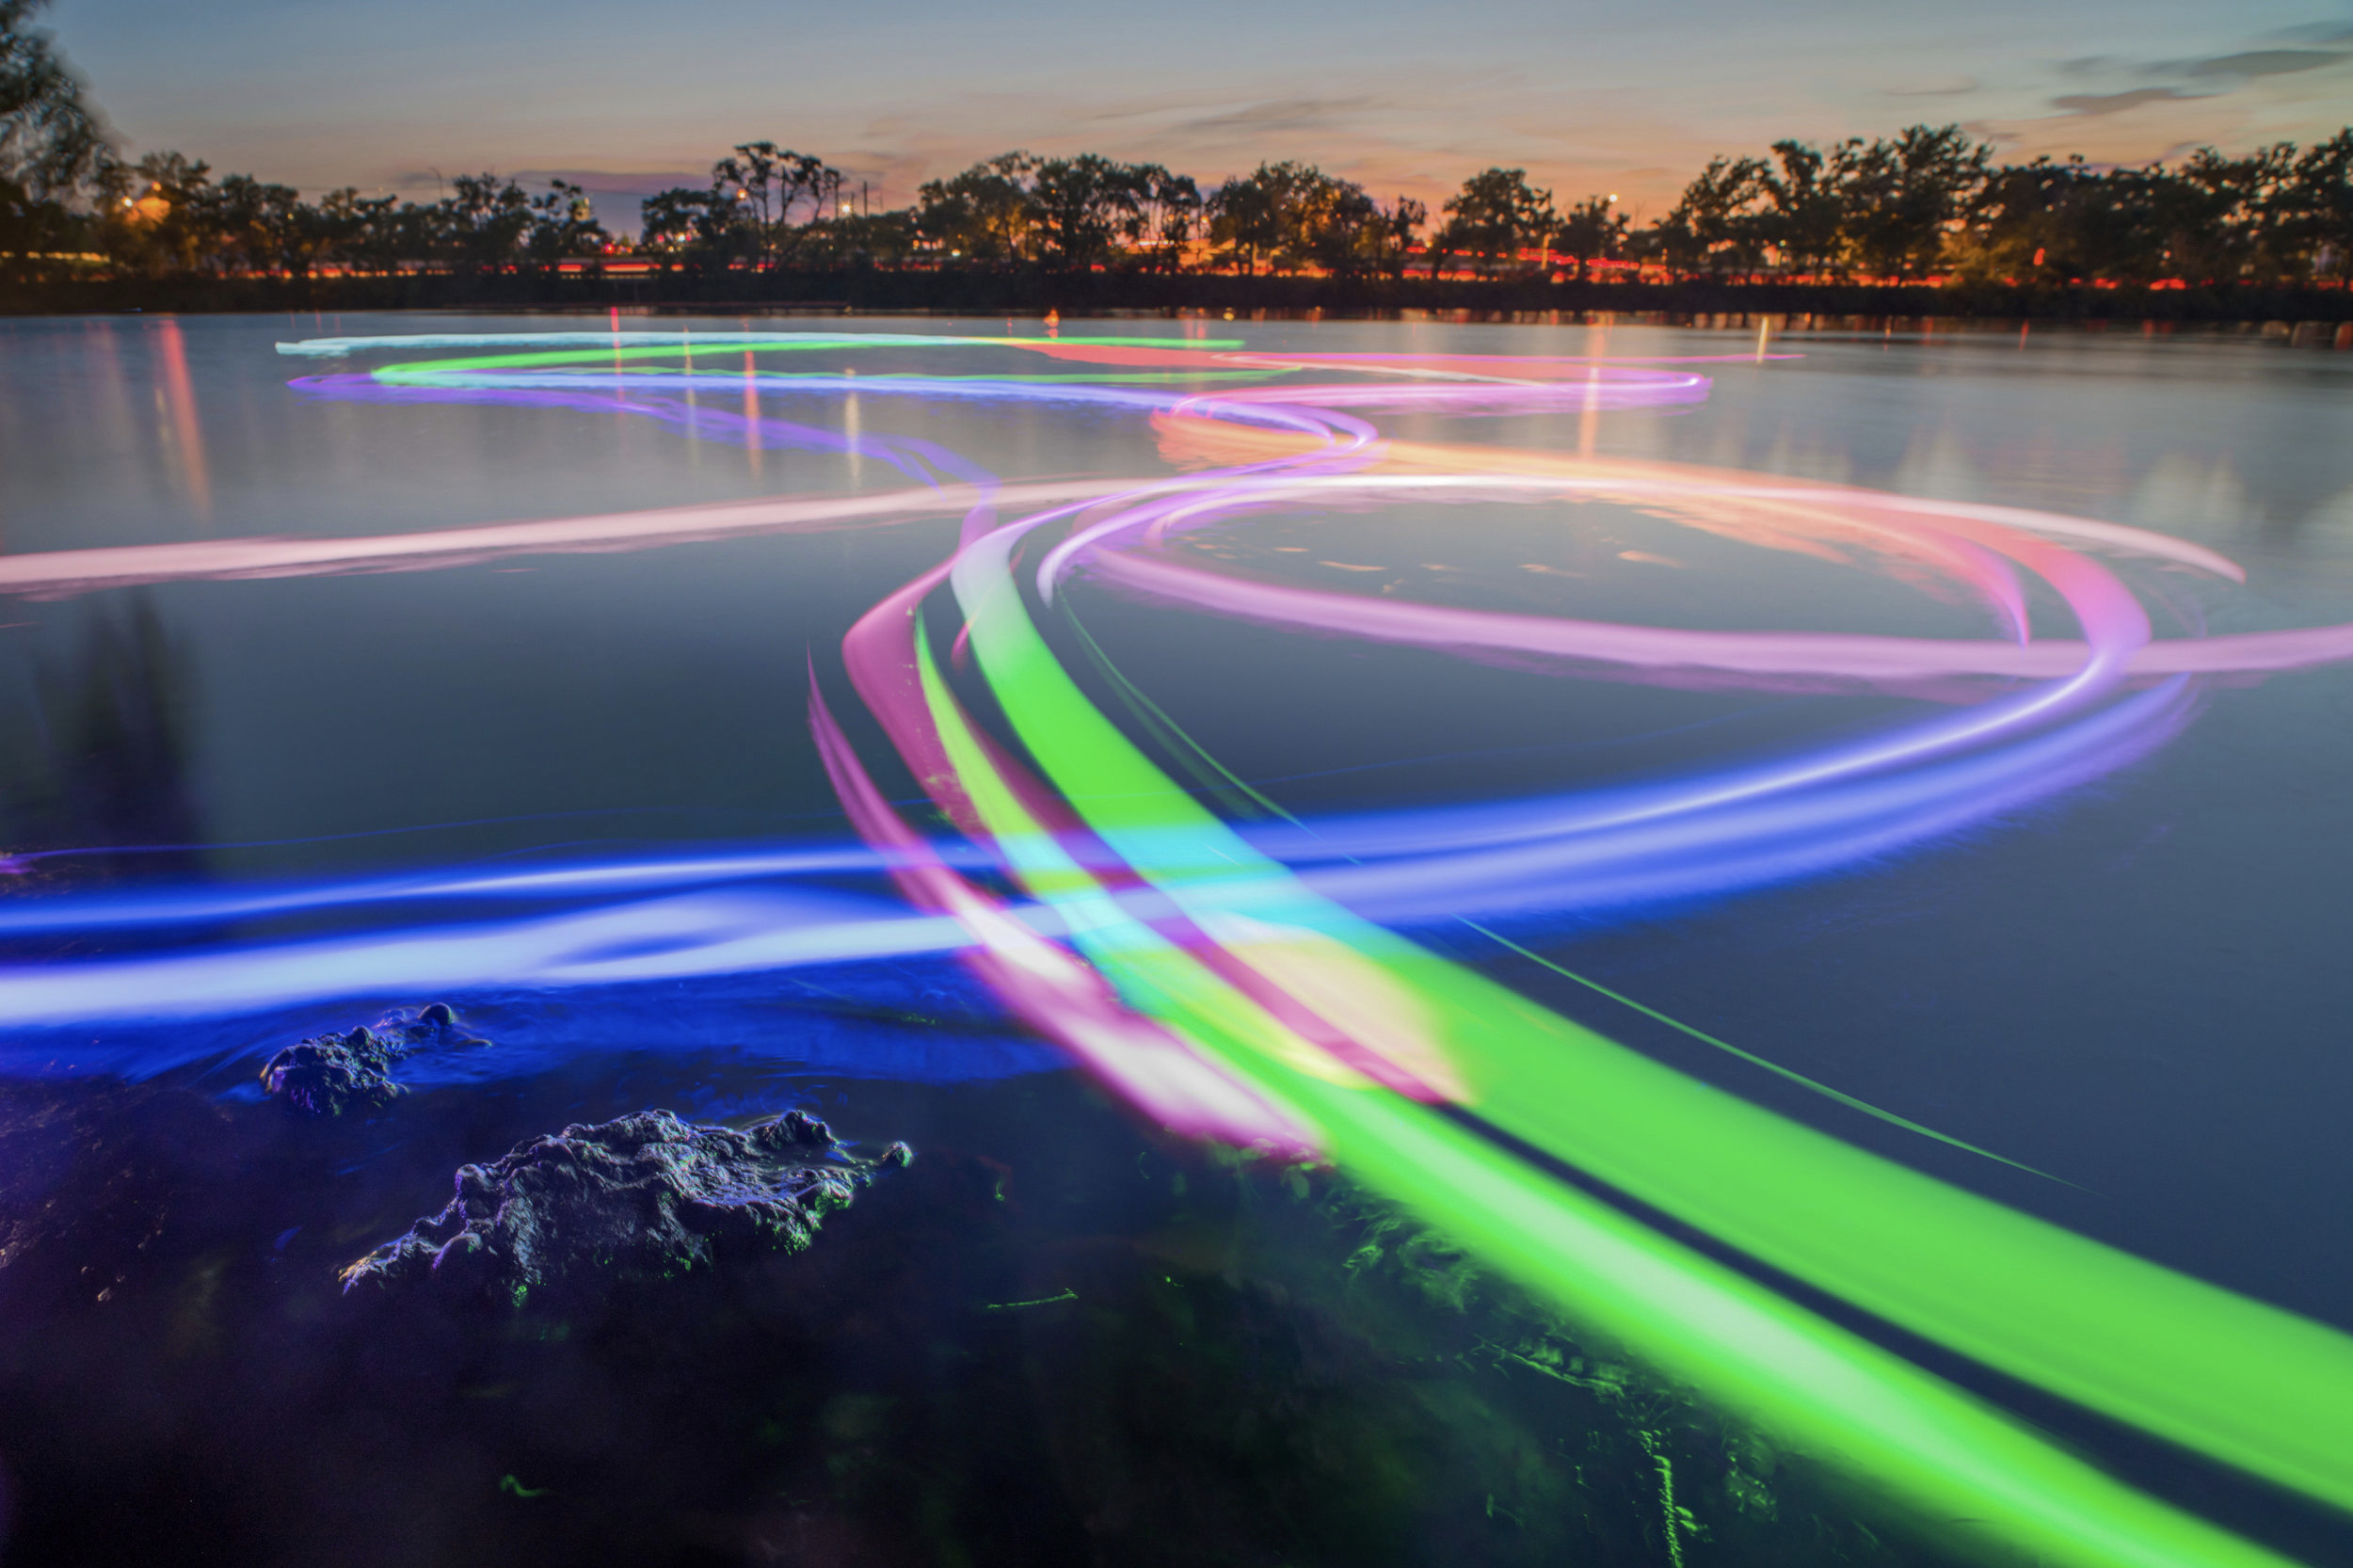 A composite long exposure image captures the light trails drawn on the river by many community members throughout the evening at Magazine Beach   ArtBoat: Magazine Beach, 2018 // project: Laura Perovich // photo: Jorge Valdez